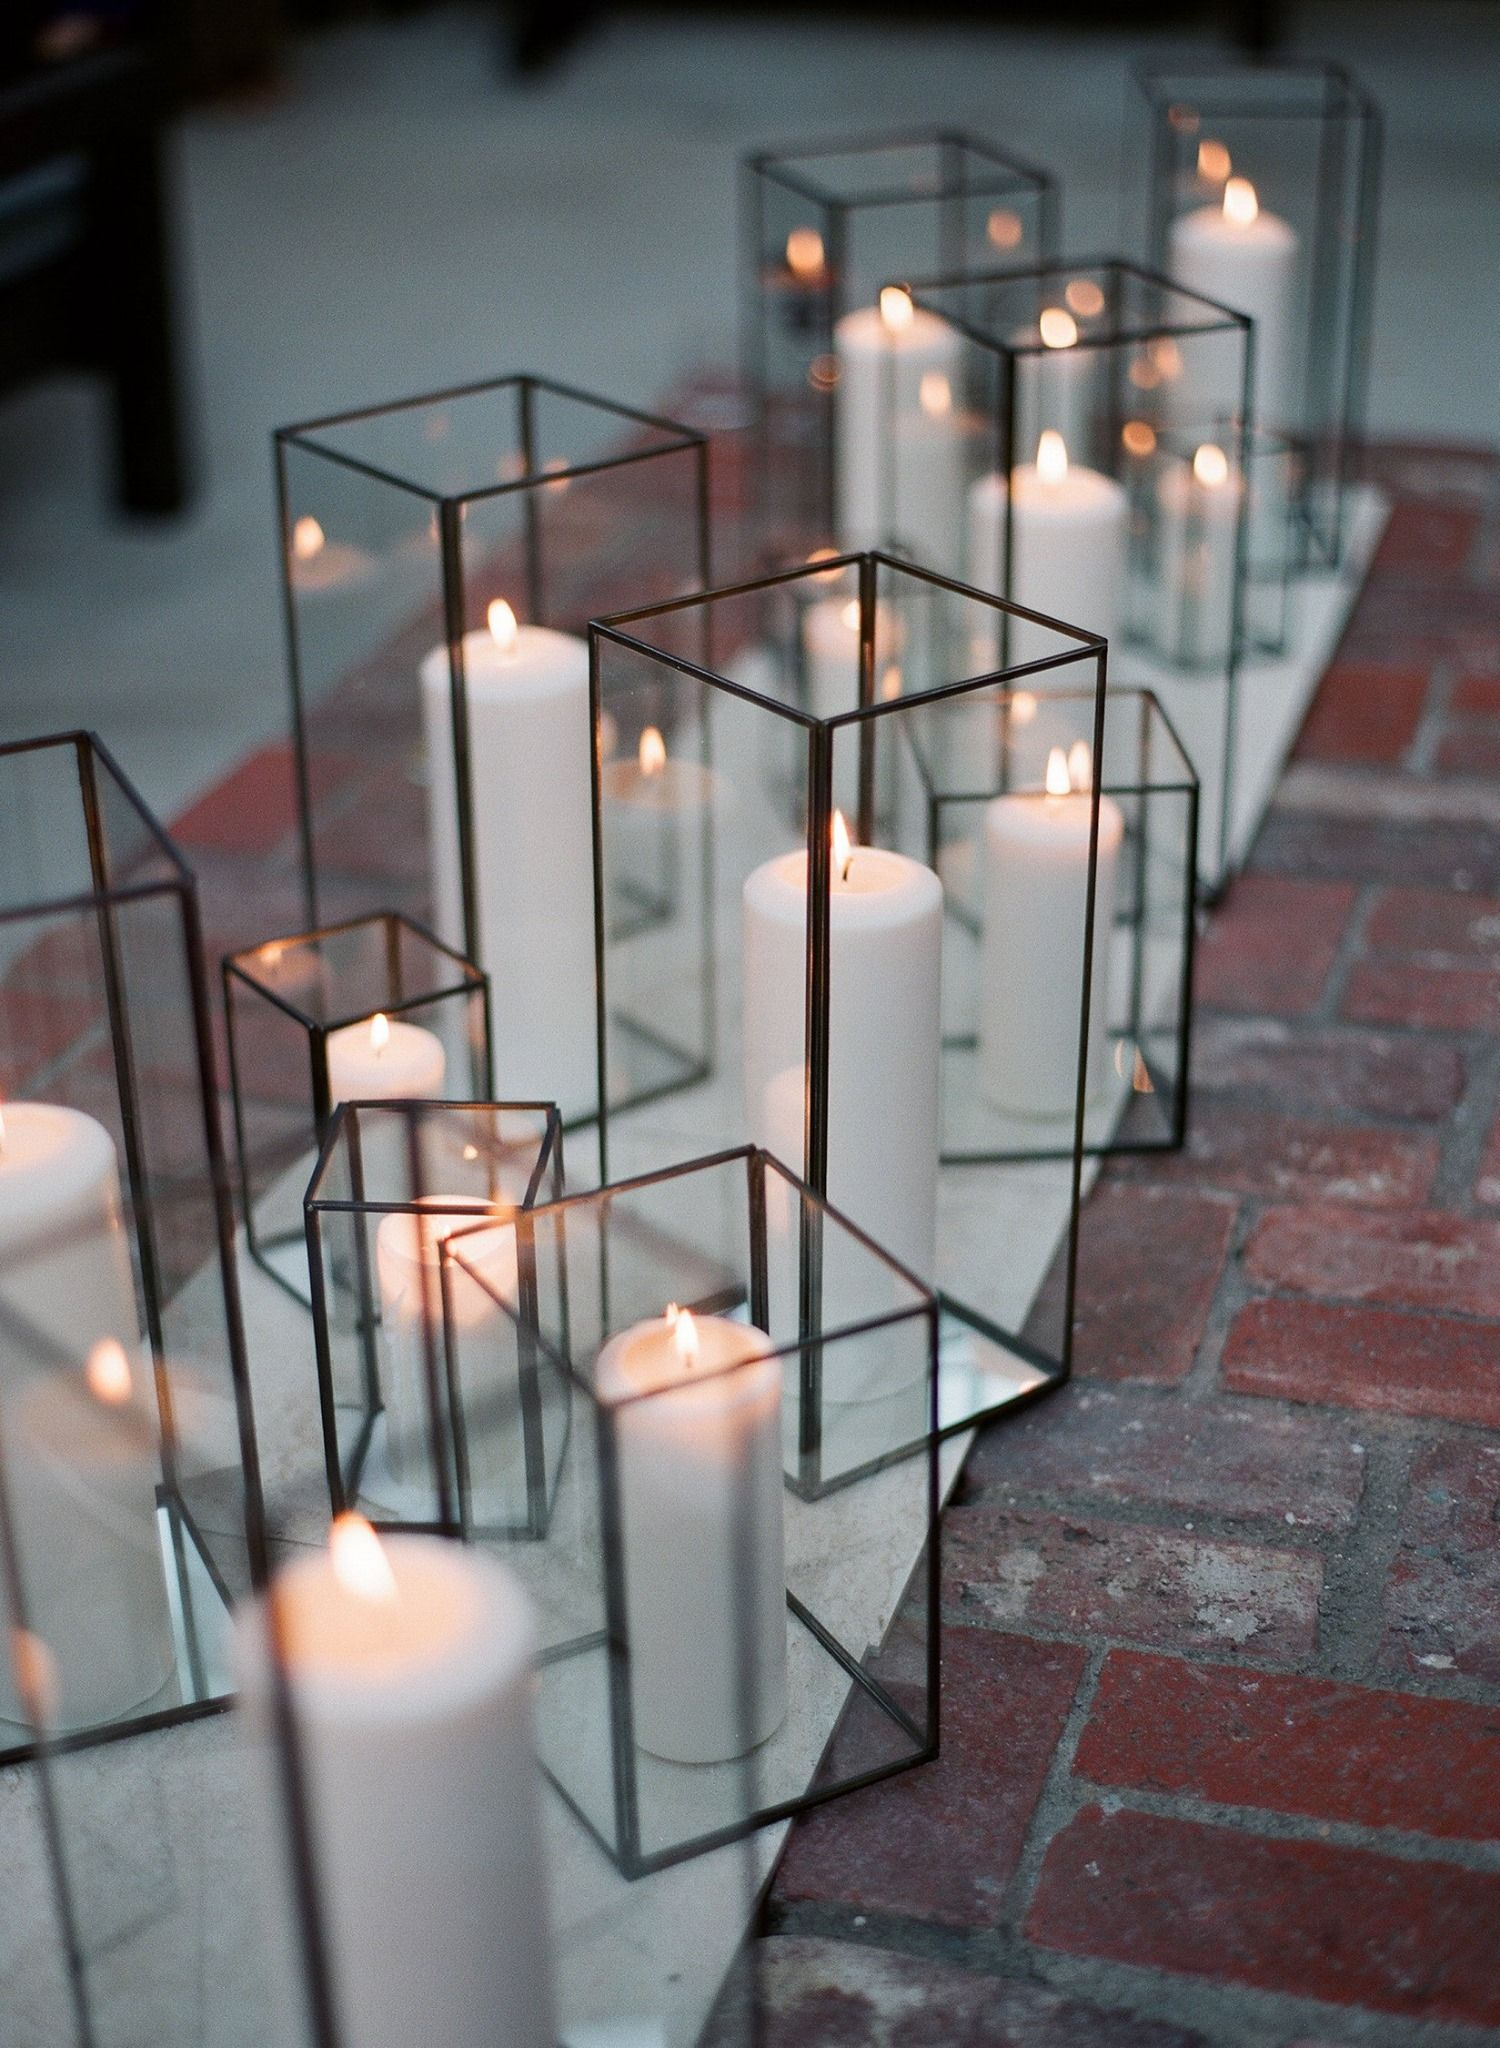 How, when and to whom to put church candles